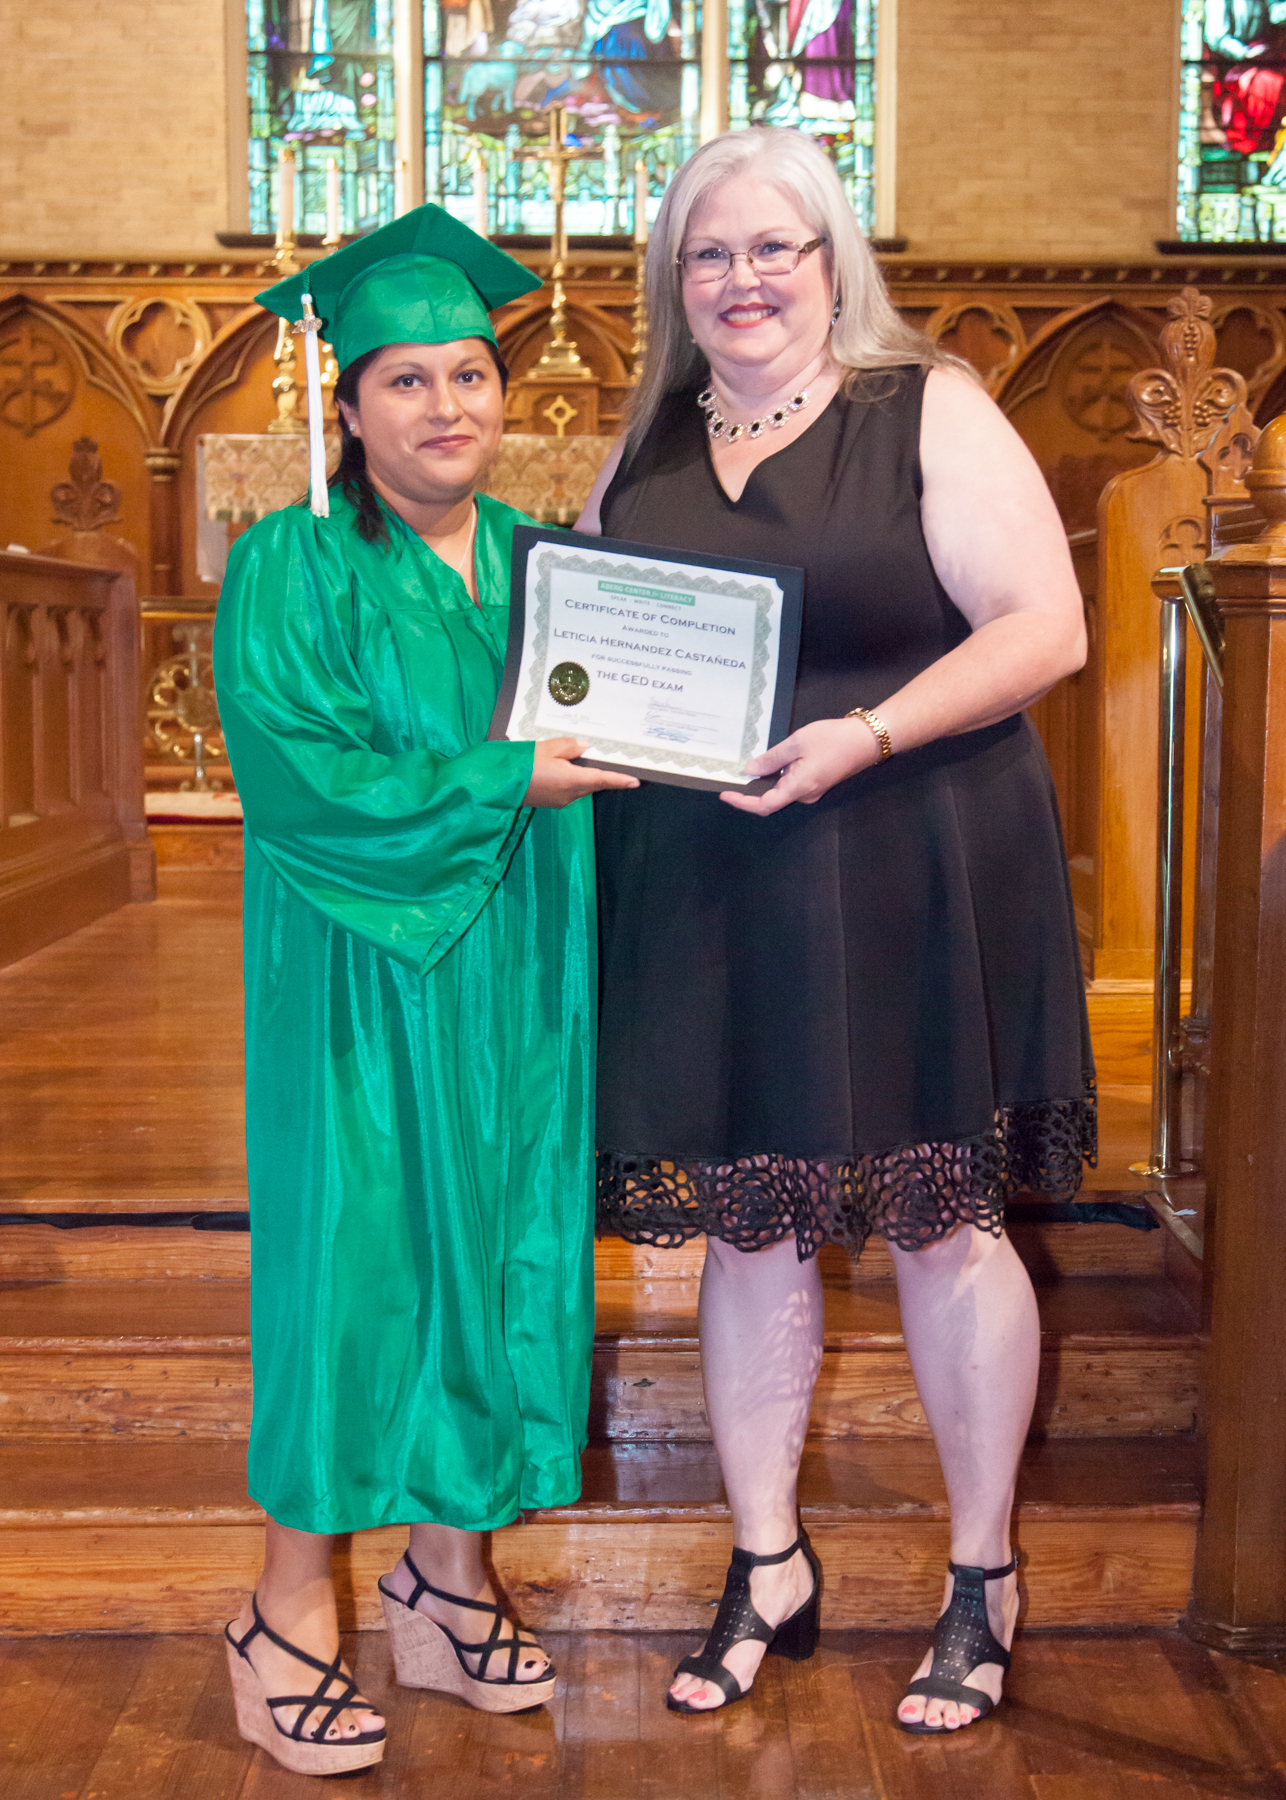 6-Aberg Center for Literacy - June 2019 Graduation.jpg